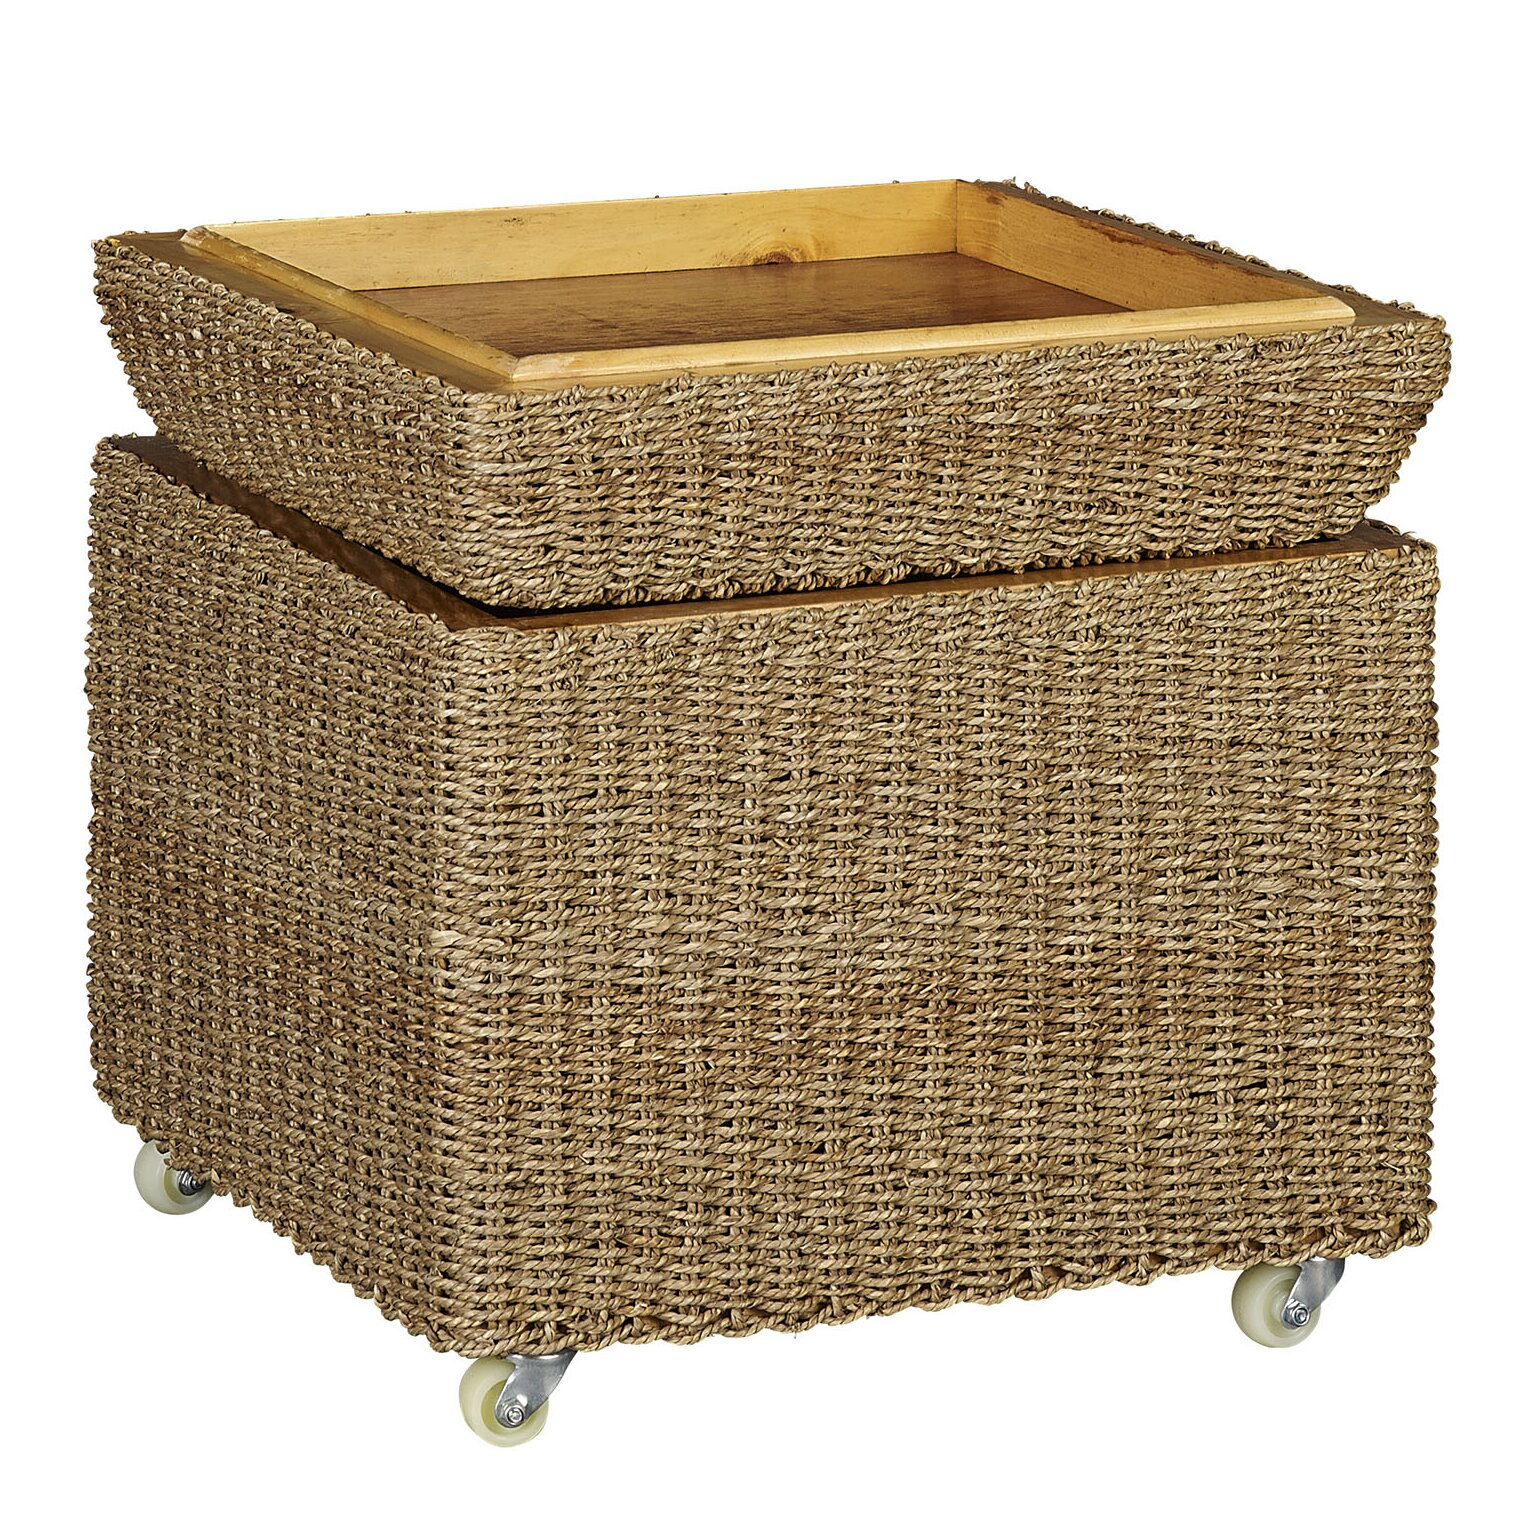 Rolling Seagrass Wicker Storage Seat Ottoman - Household Essentials Rolling Seagrass Wicker Storage Seat Ottoman